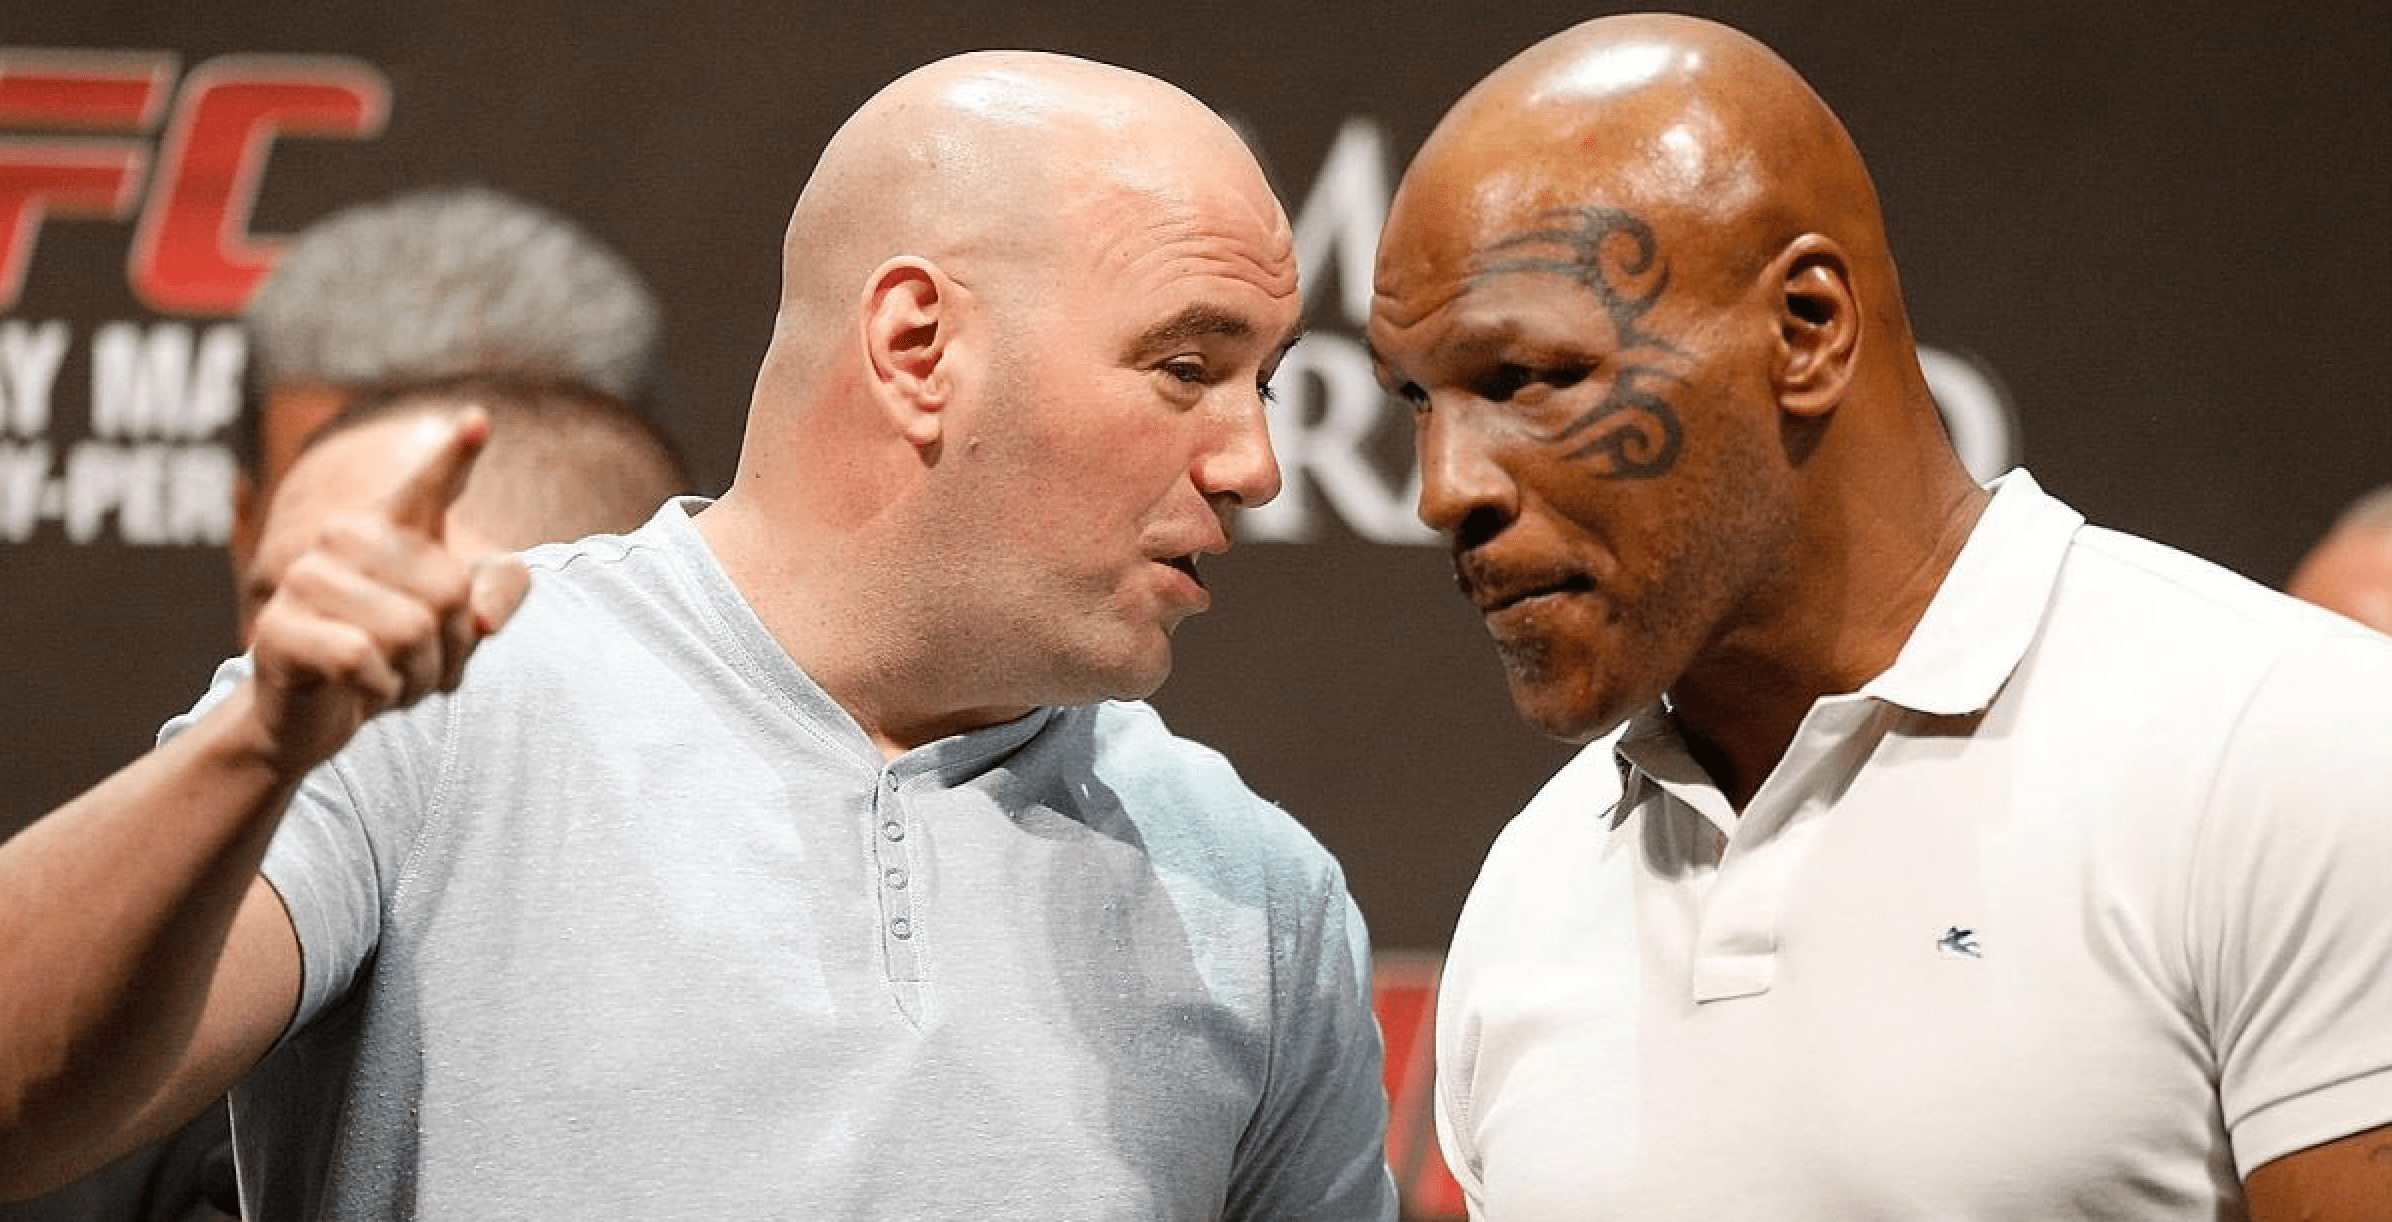 Dana White On UFC 249: Every Time We Plan Something, It Falls Apart